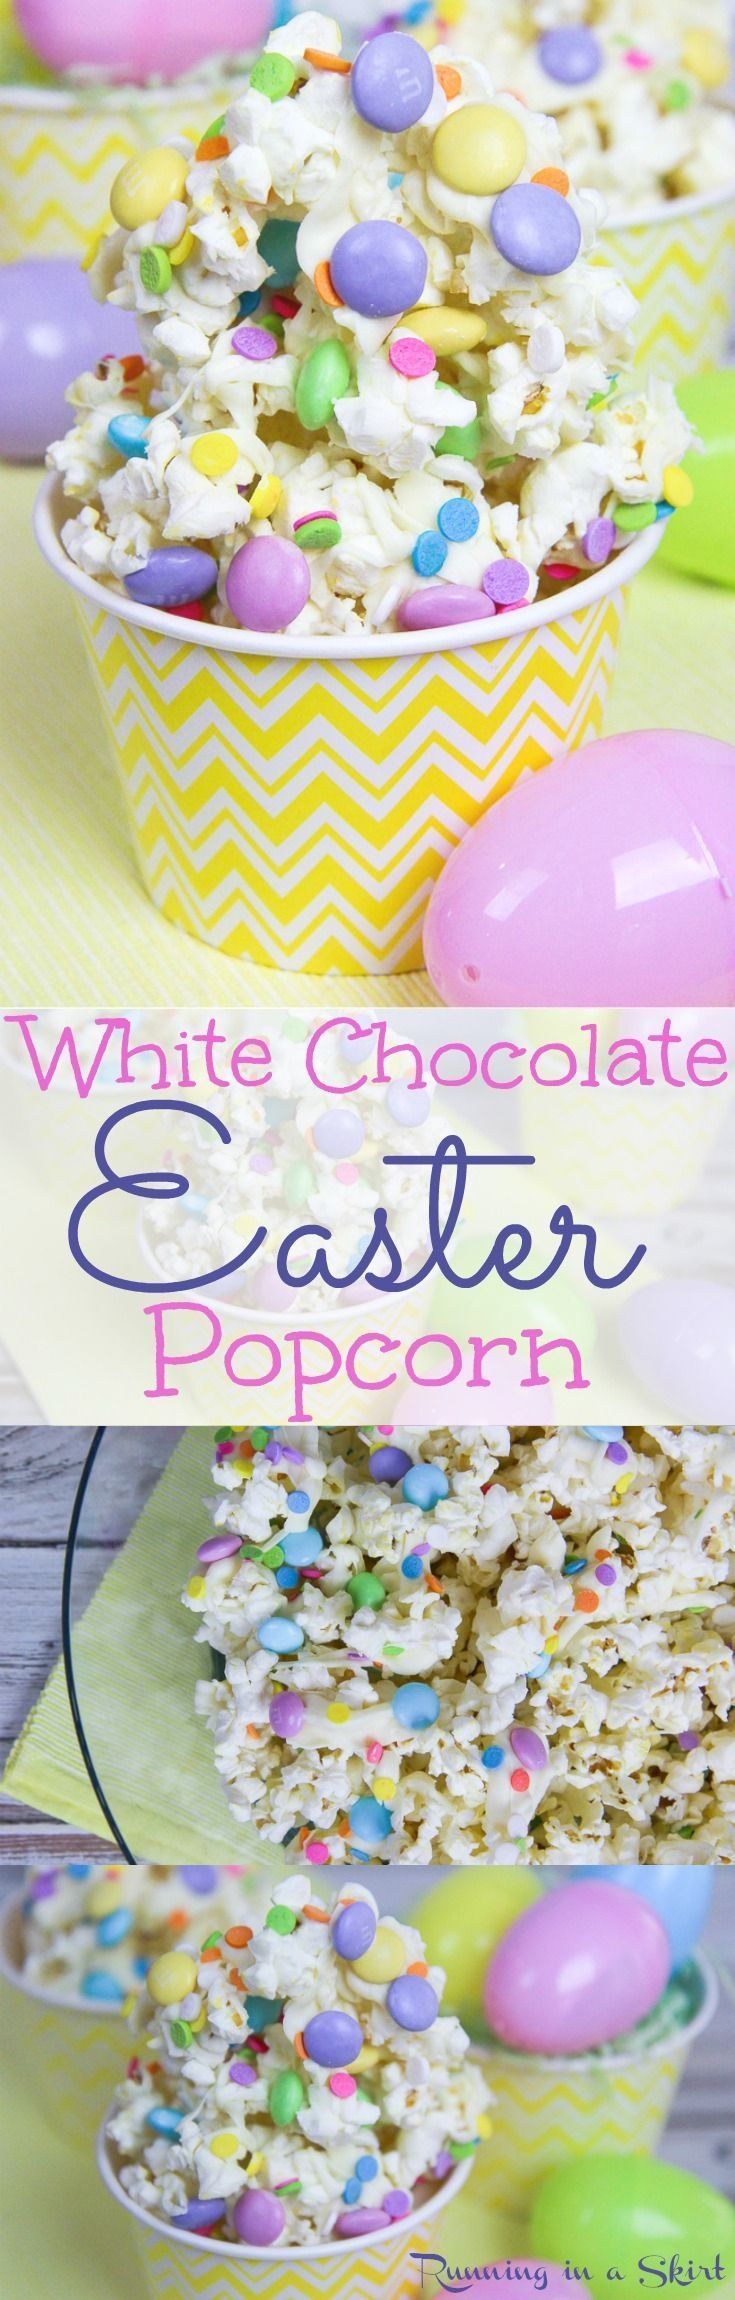 Fun & Festive White Chocolate Easter Popcorn recipe! A simple spring snack for movie night, familiar parties or an edible gift. Uses sweets and candy along with the popcorn. Love the sprinkles! / Running in a Skirt